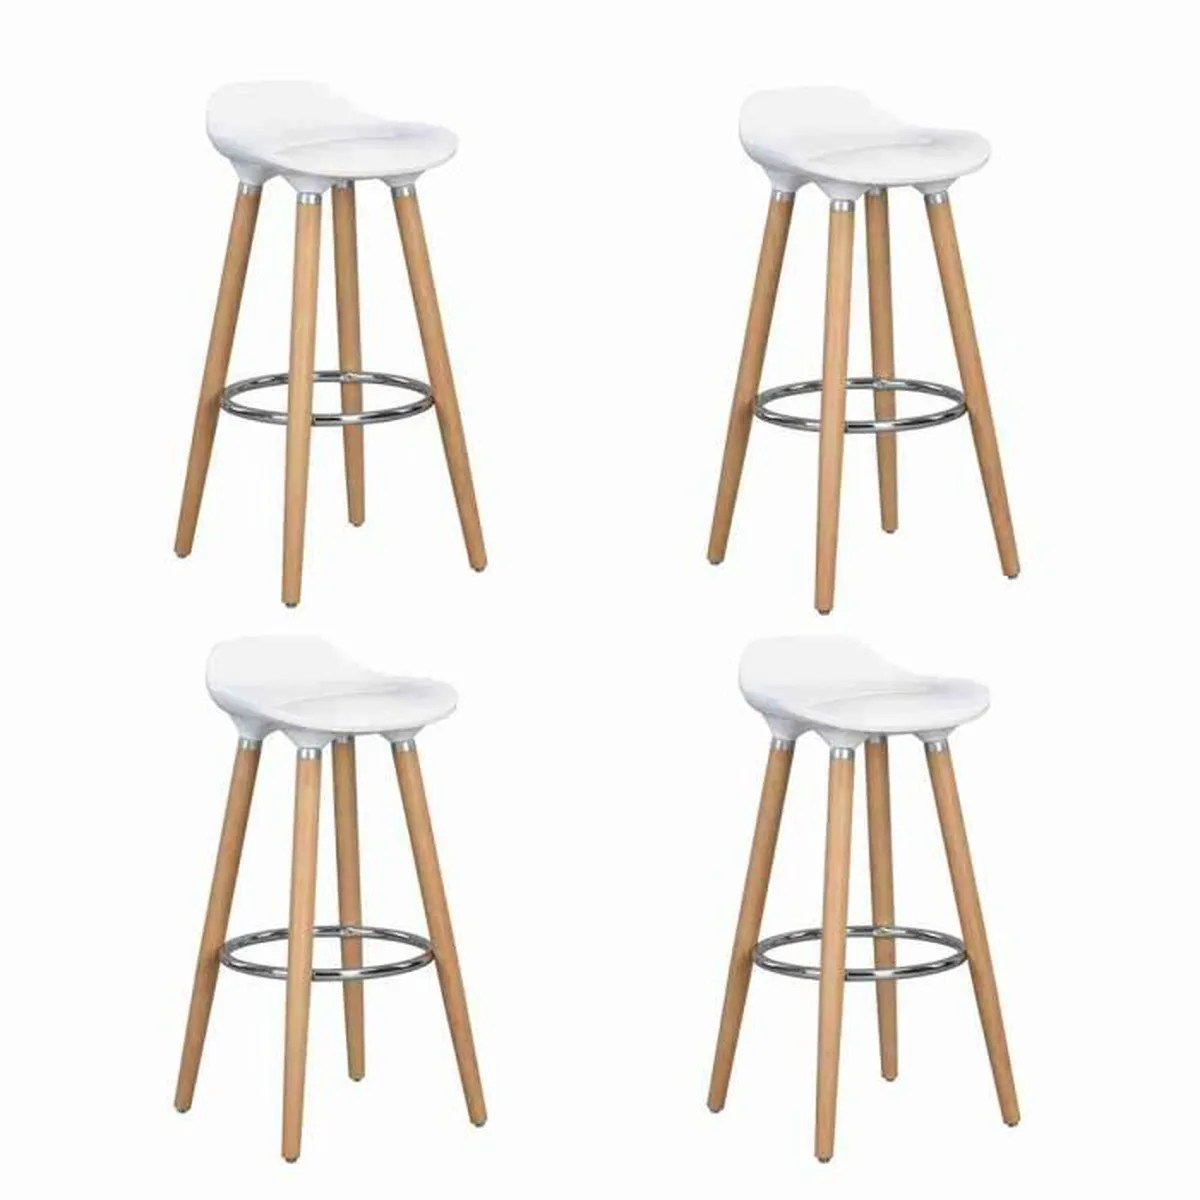 Songmics Lot De 2 Tabourets De Bar Stool Chaise Haute Bar Achat Vente Chaise Haute Bar Pas Cher